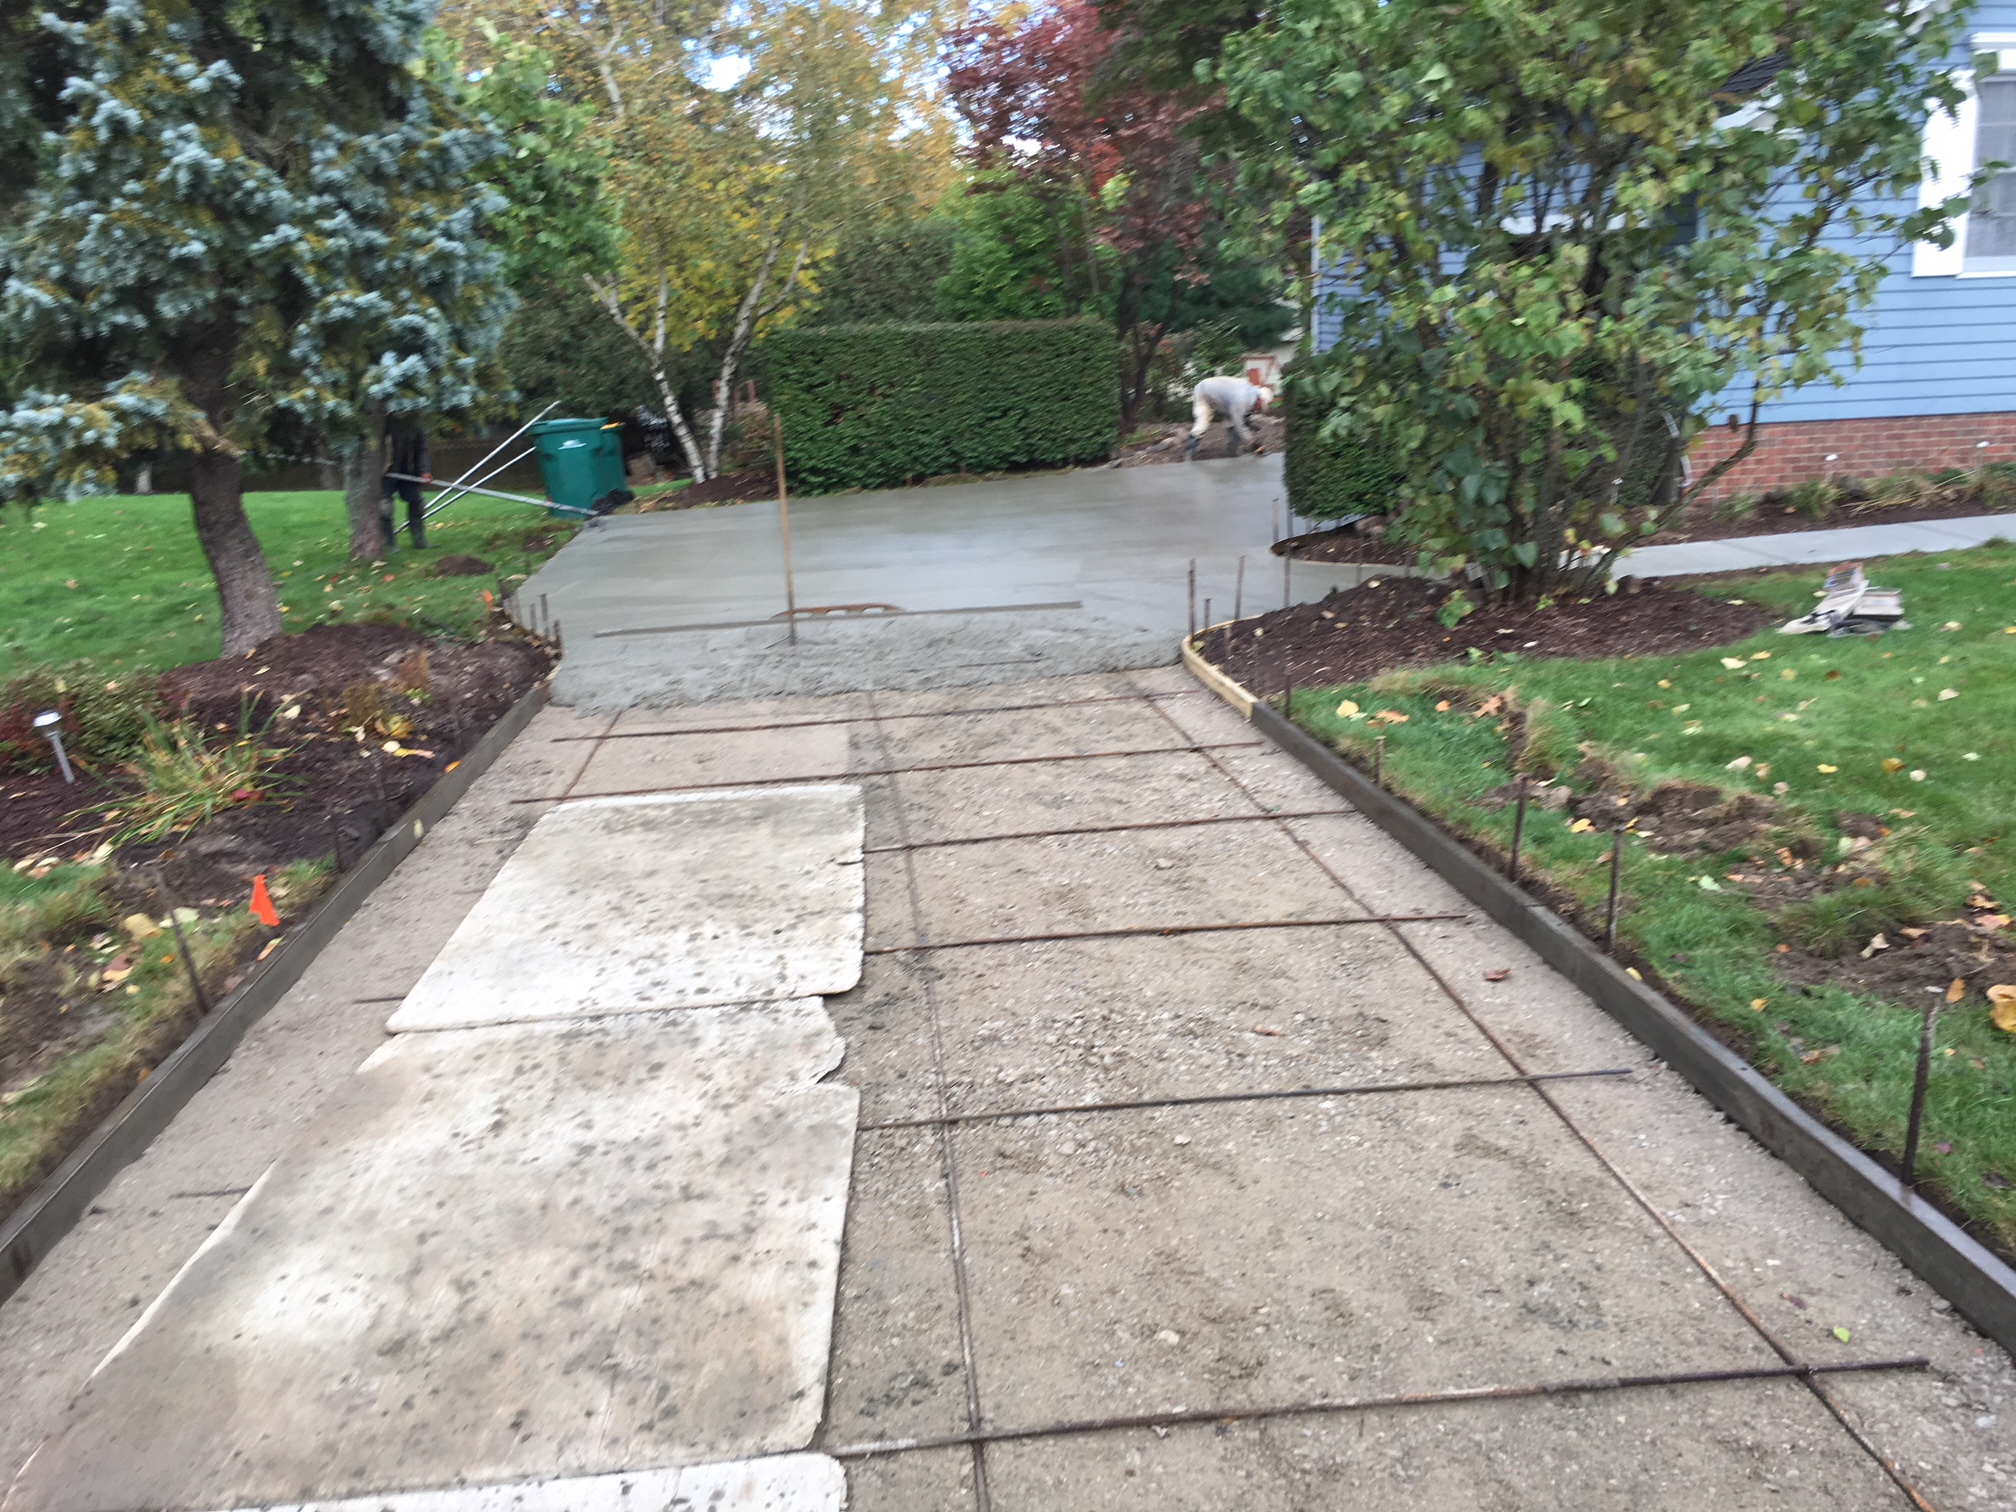 Placement of a concrete driveway